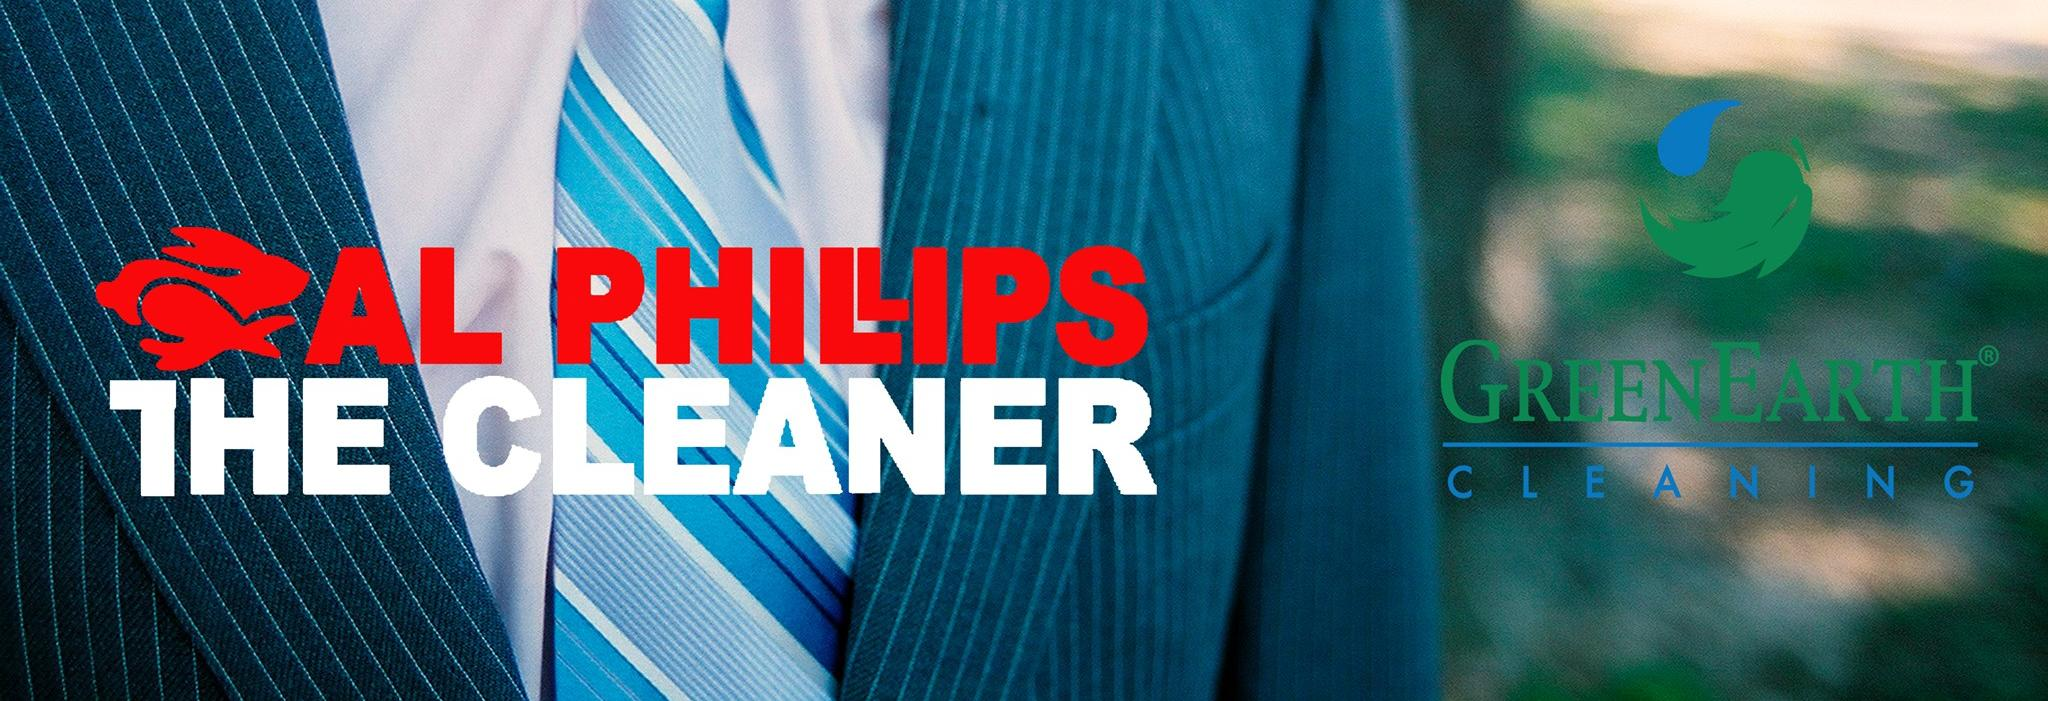 al phillips the cleaner logo Irvine ca dry cleaners coupons near me